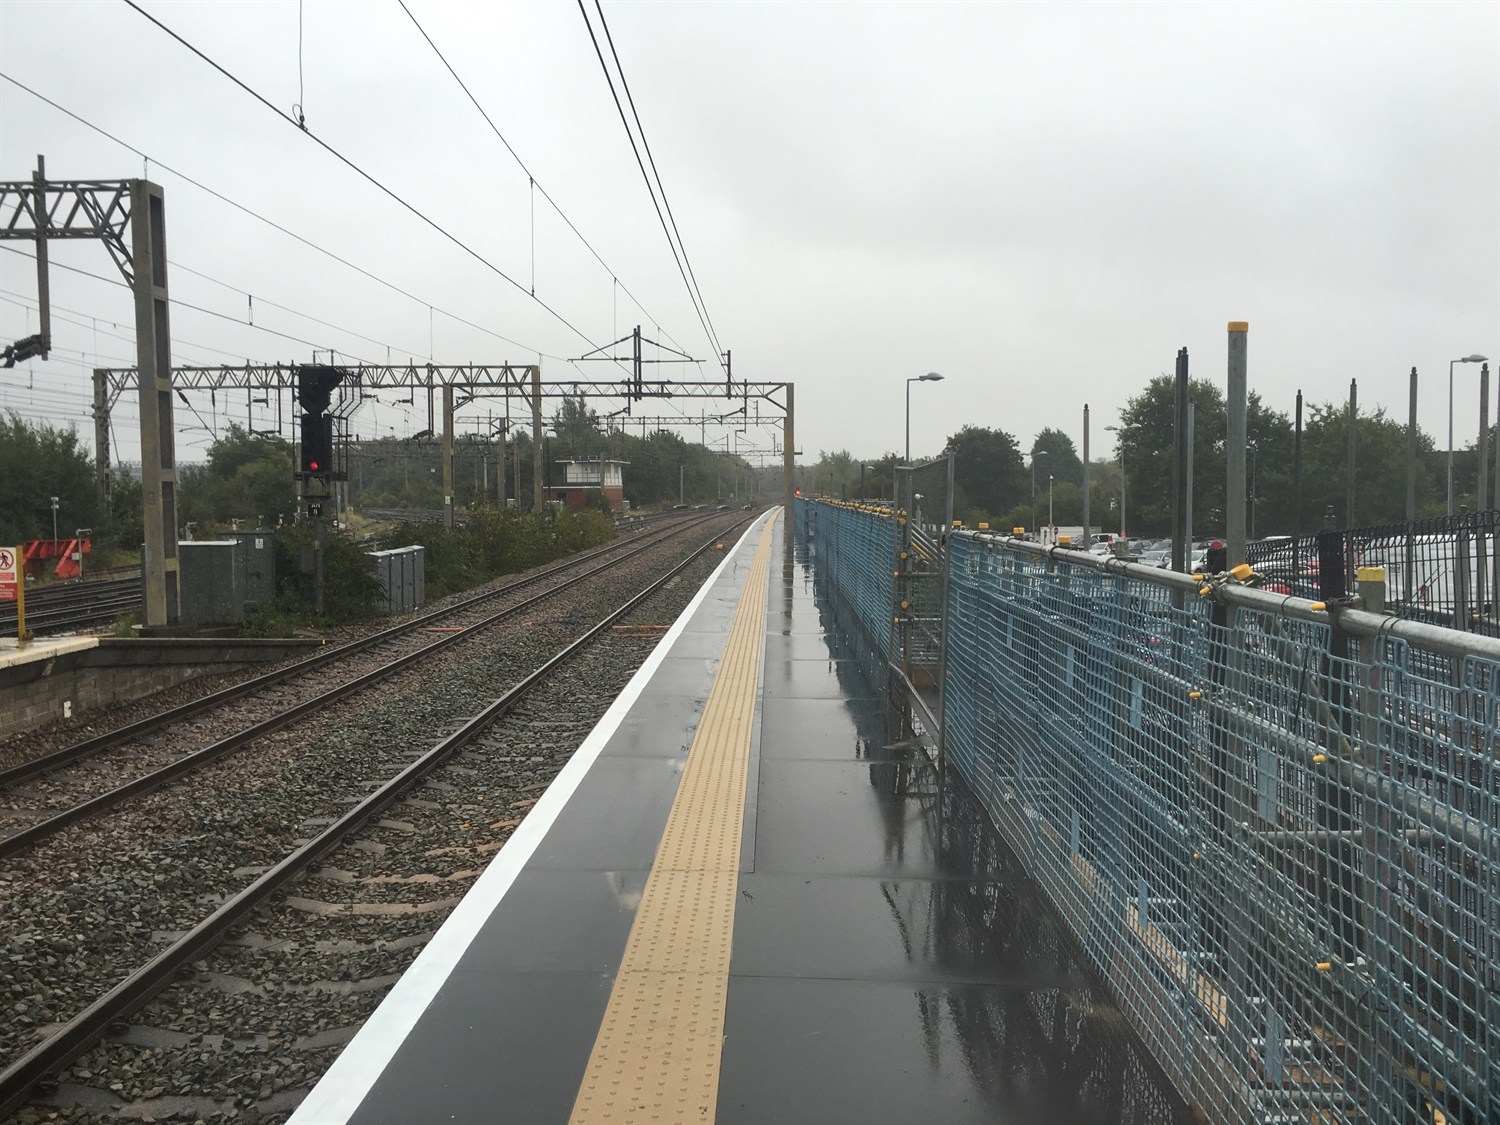 NR extends platform at Liverpool South Parkway ahead of Lime Street upgrade